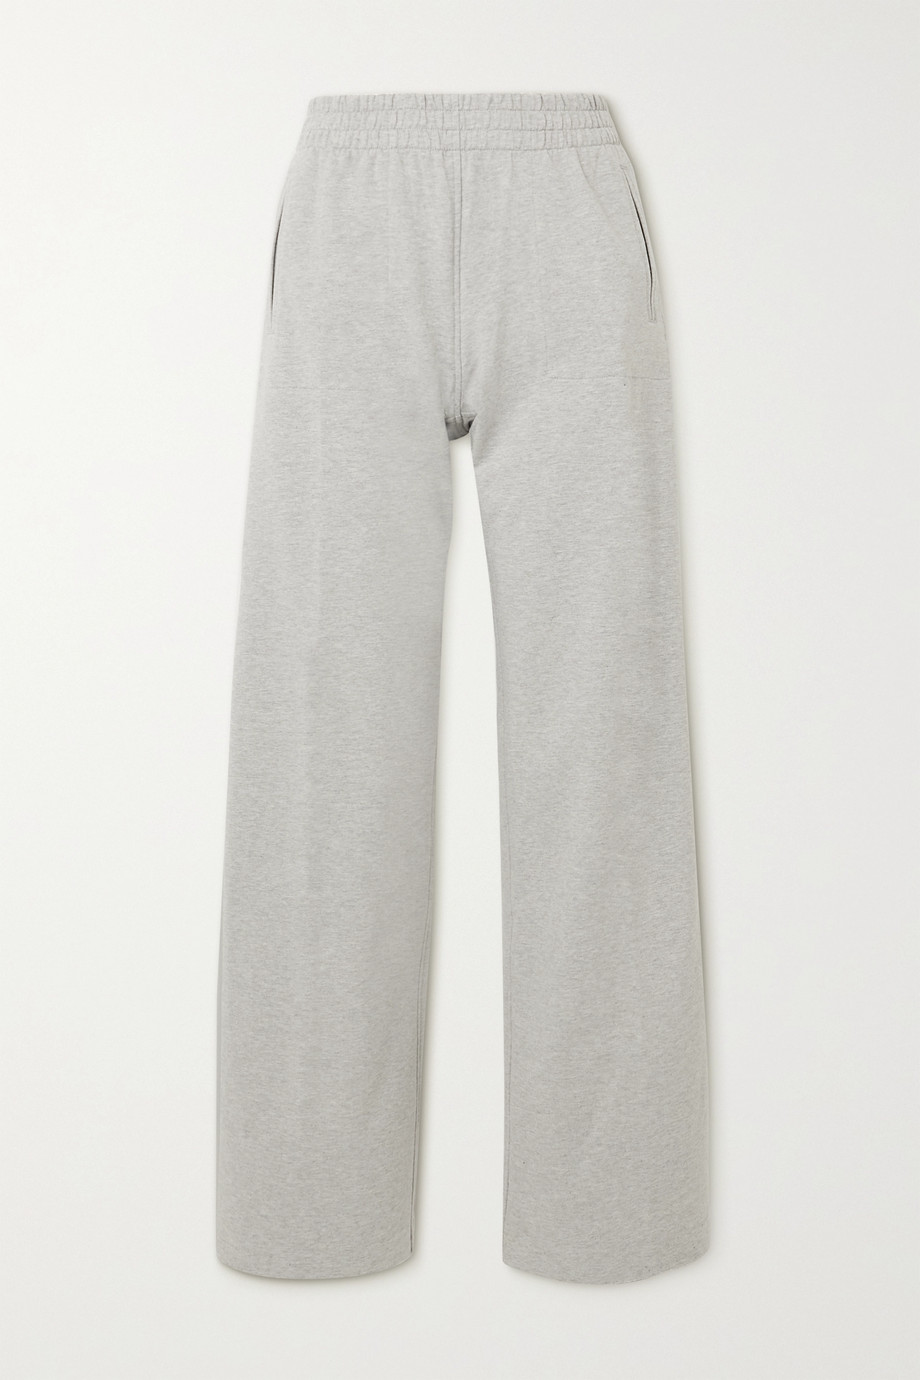 Norma Kamali Metallic striped stretch-cotton jersey track pants